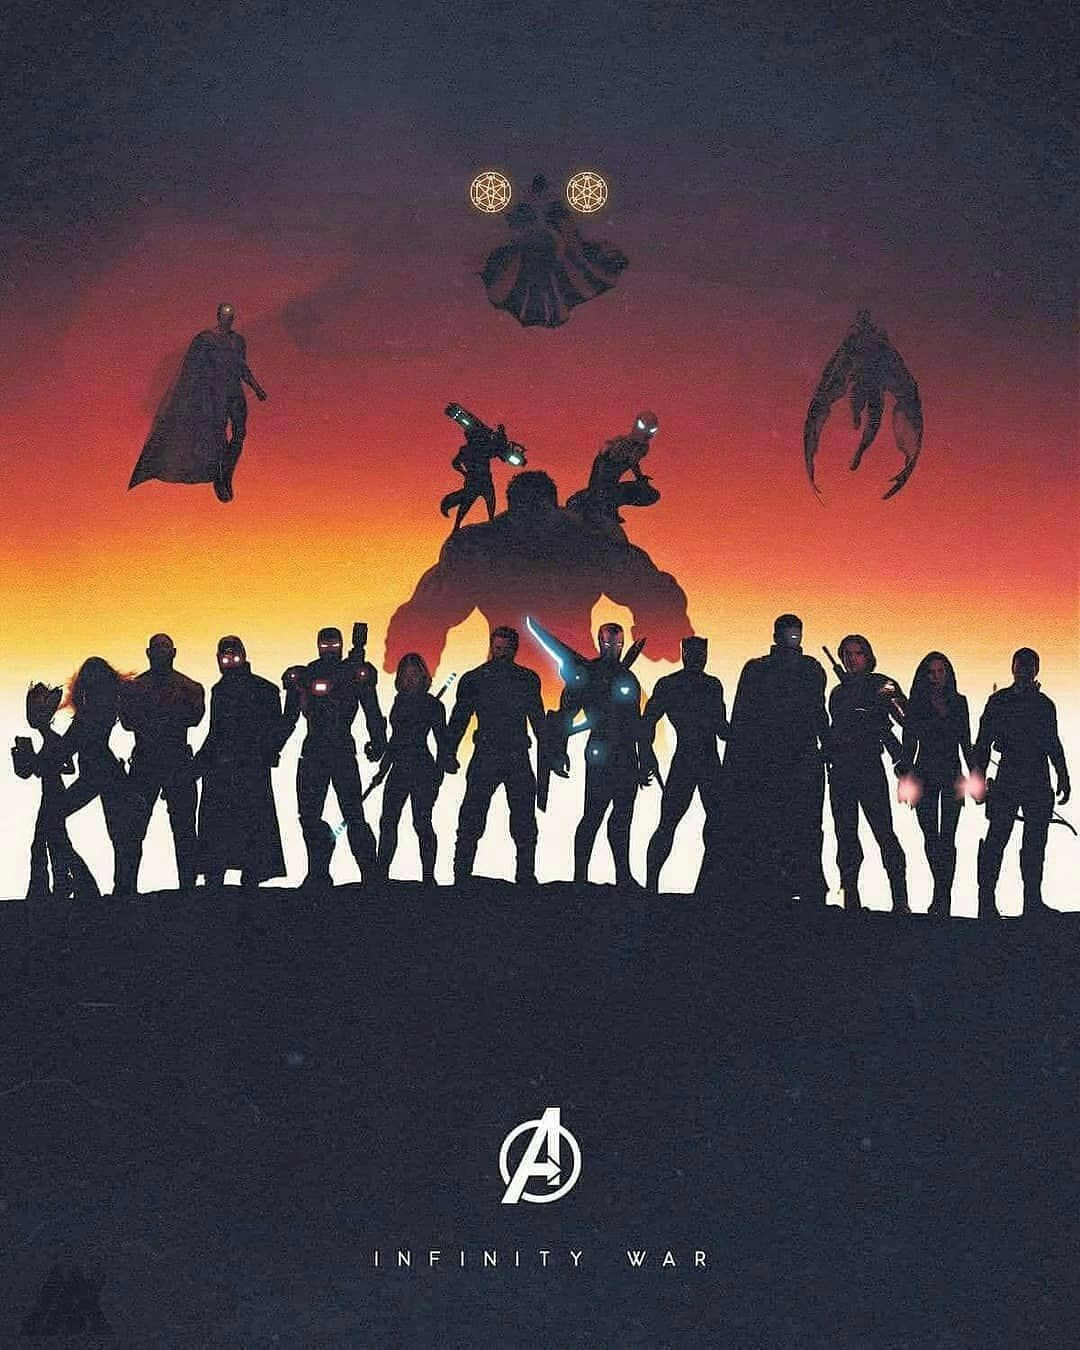 Avengers Infinite War Super Lit Poster Has All Of The Heroes In One Very Cool An マーベルヒーロー アベンジャーズ 壁紙 アベンジャーズ